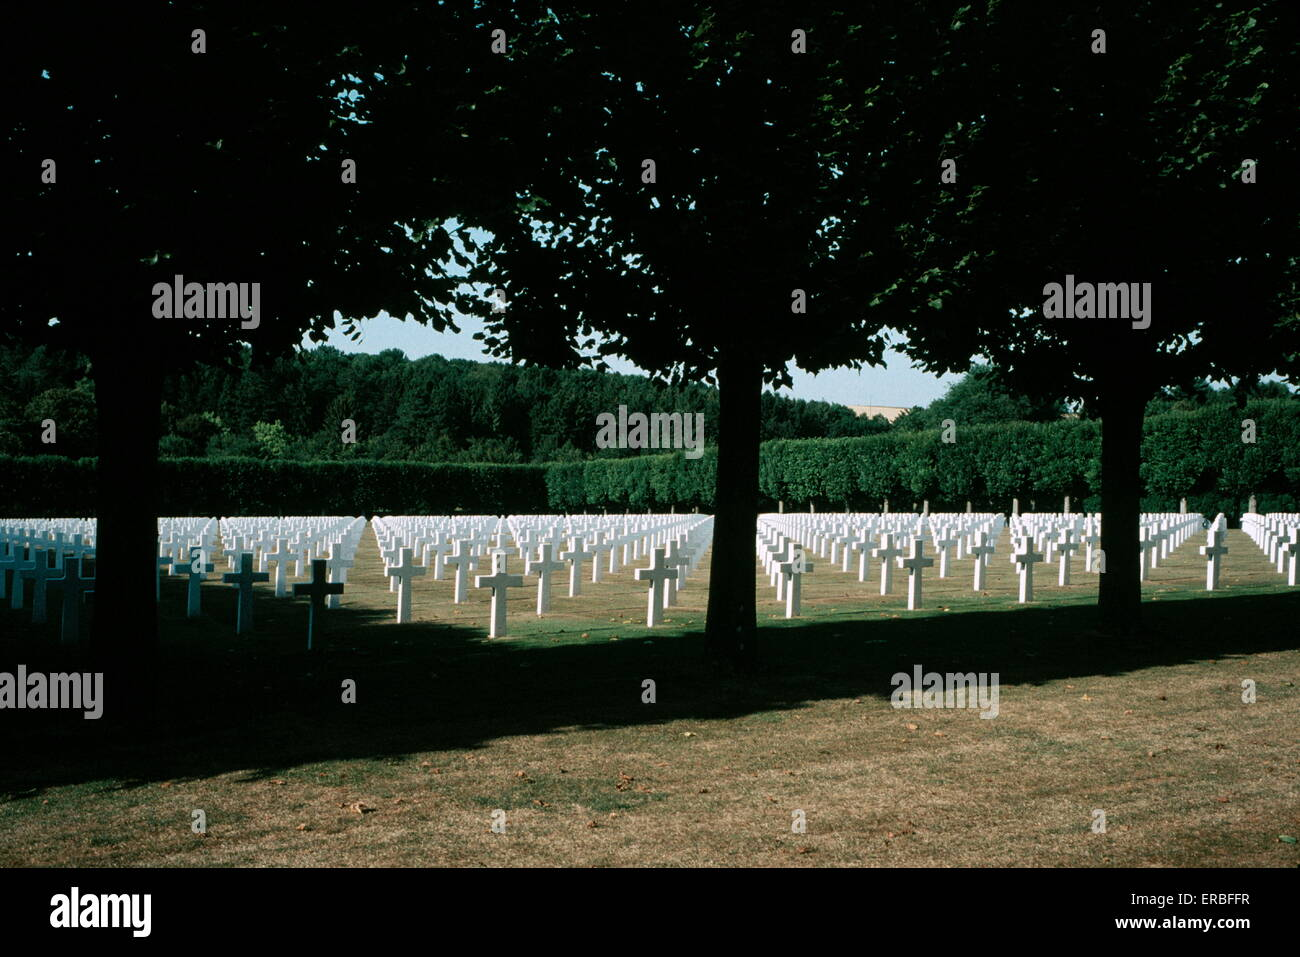 AJAXNETPHOTO. MONTFAUCON, FRANCE. - WAR GRAVES - AMERICAN WWI AND WW II MILITARY CEMETERY IN THE ARGONNE REGION. - Stock Image